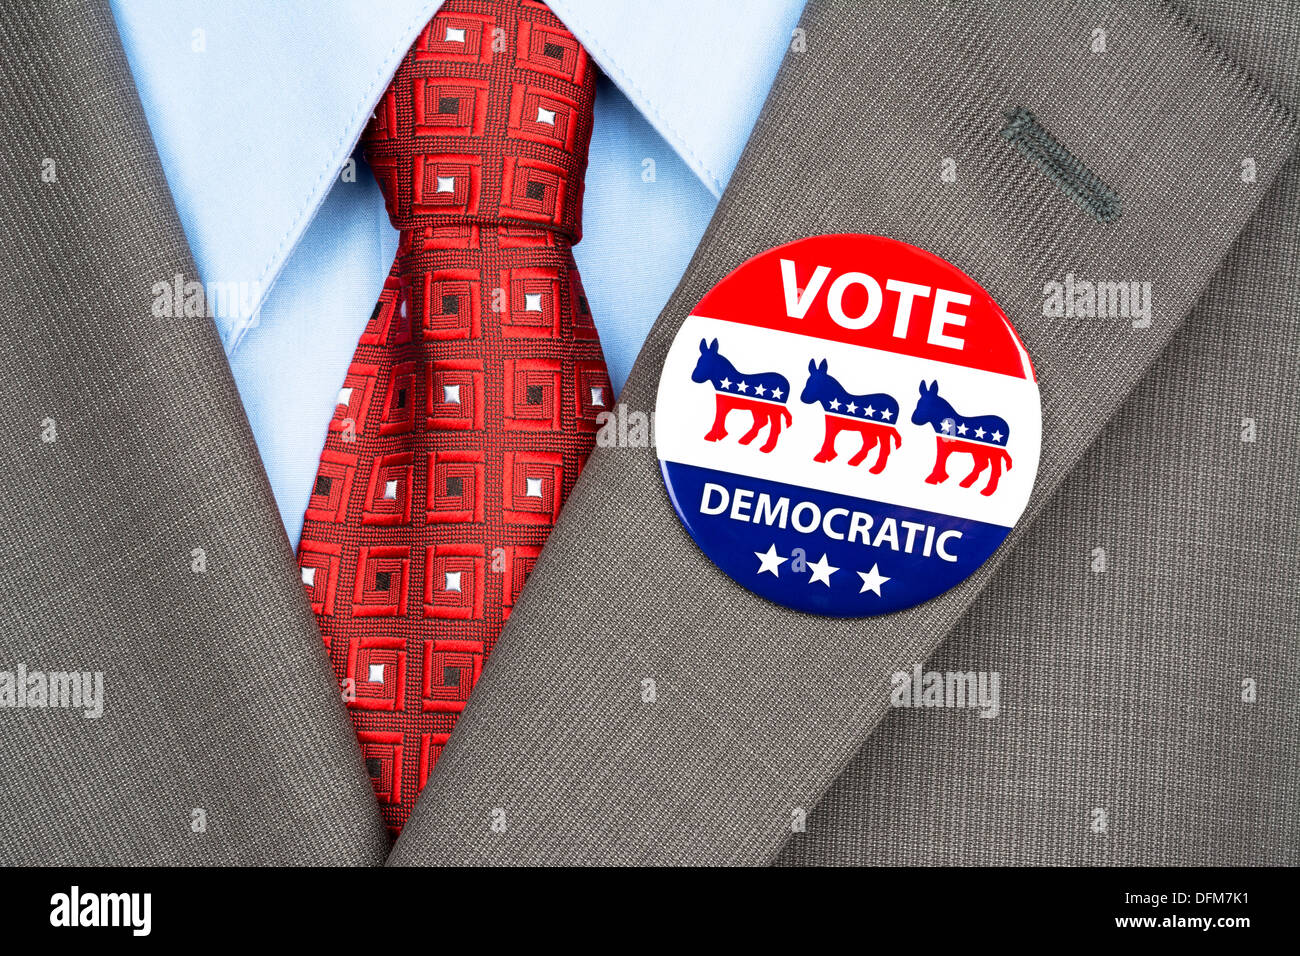 Close up of a democrat voting badge on the suit jacket lapel of an American voter. - Stock Image